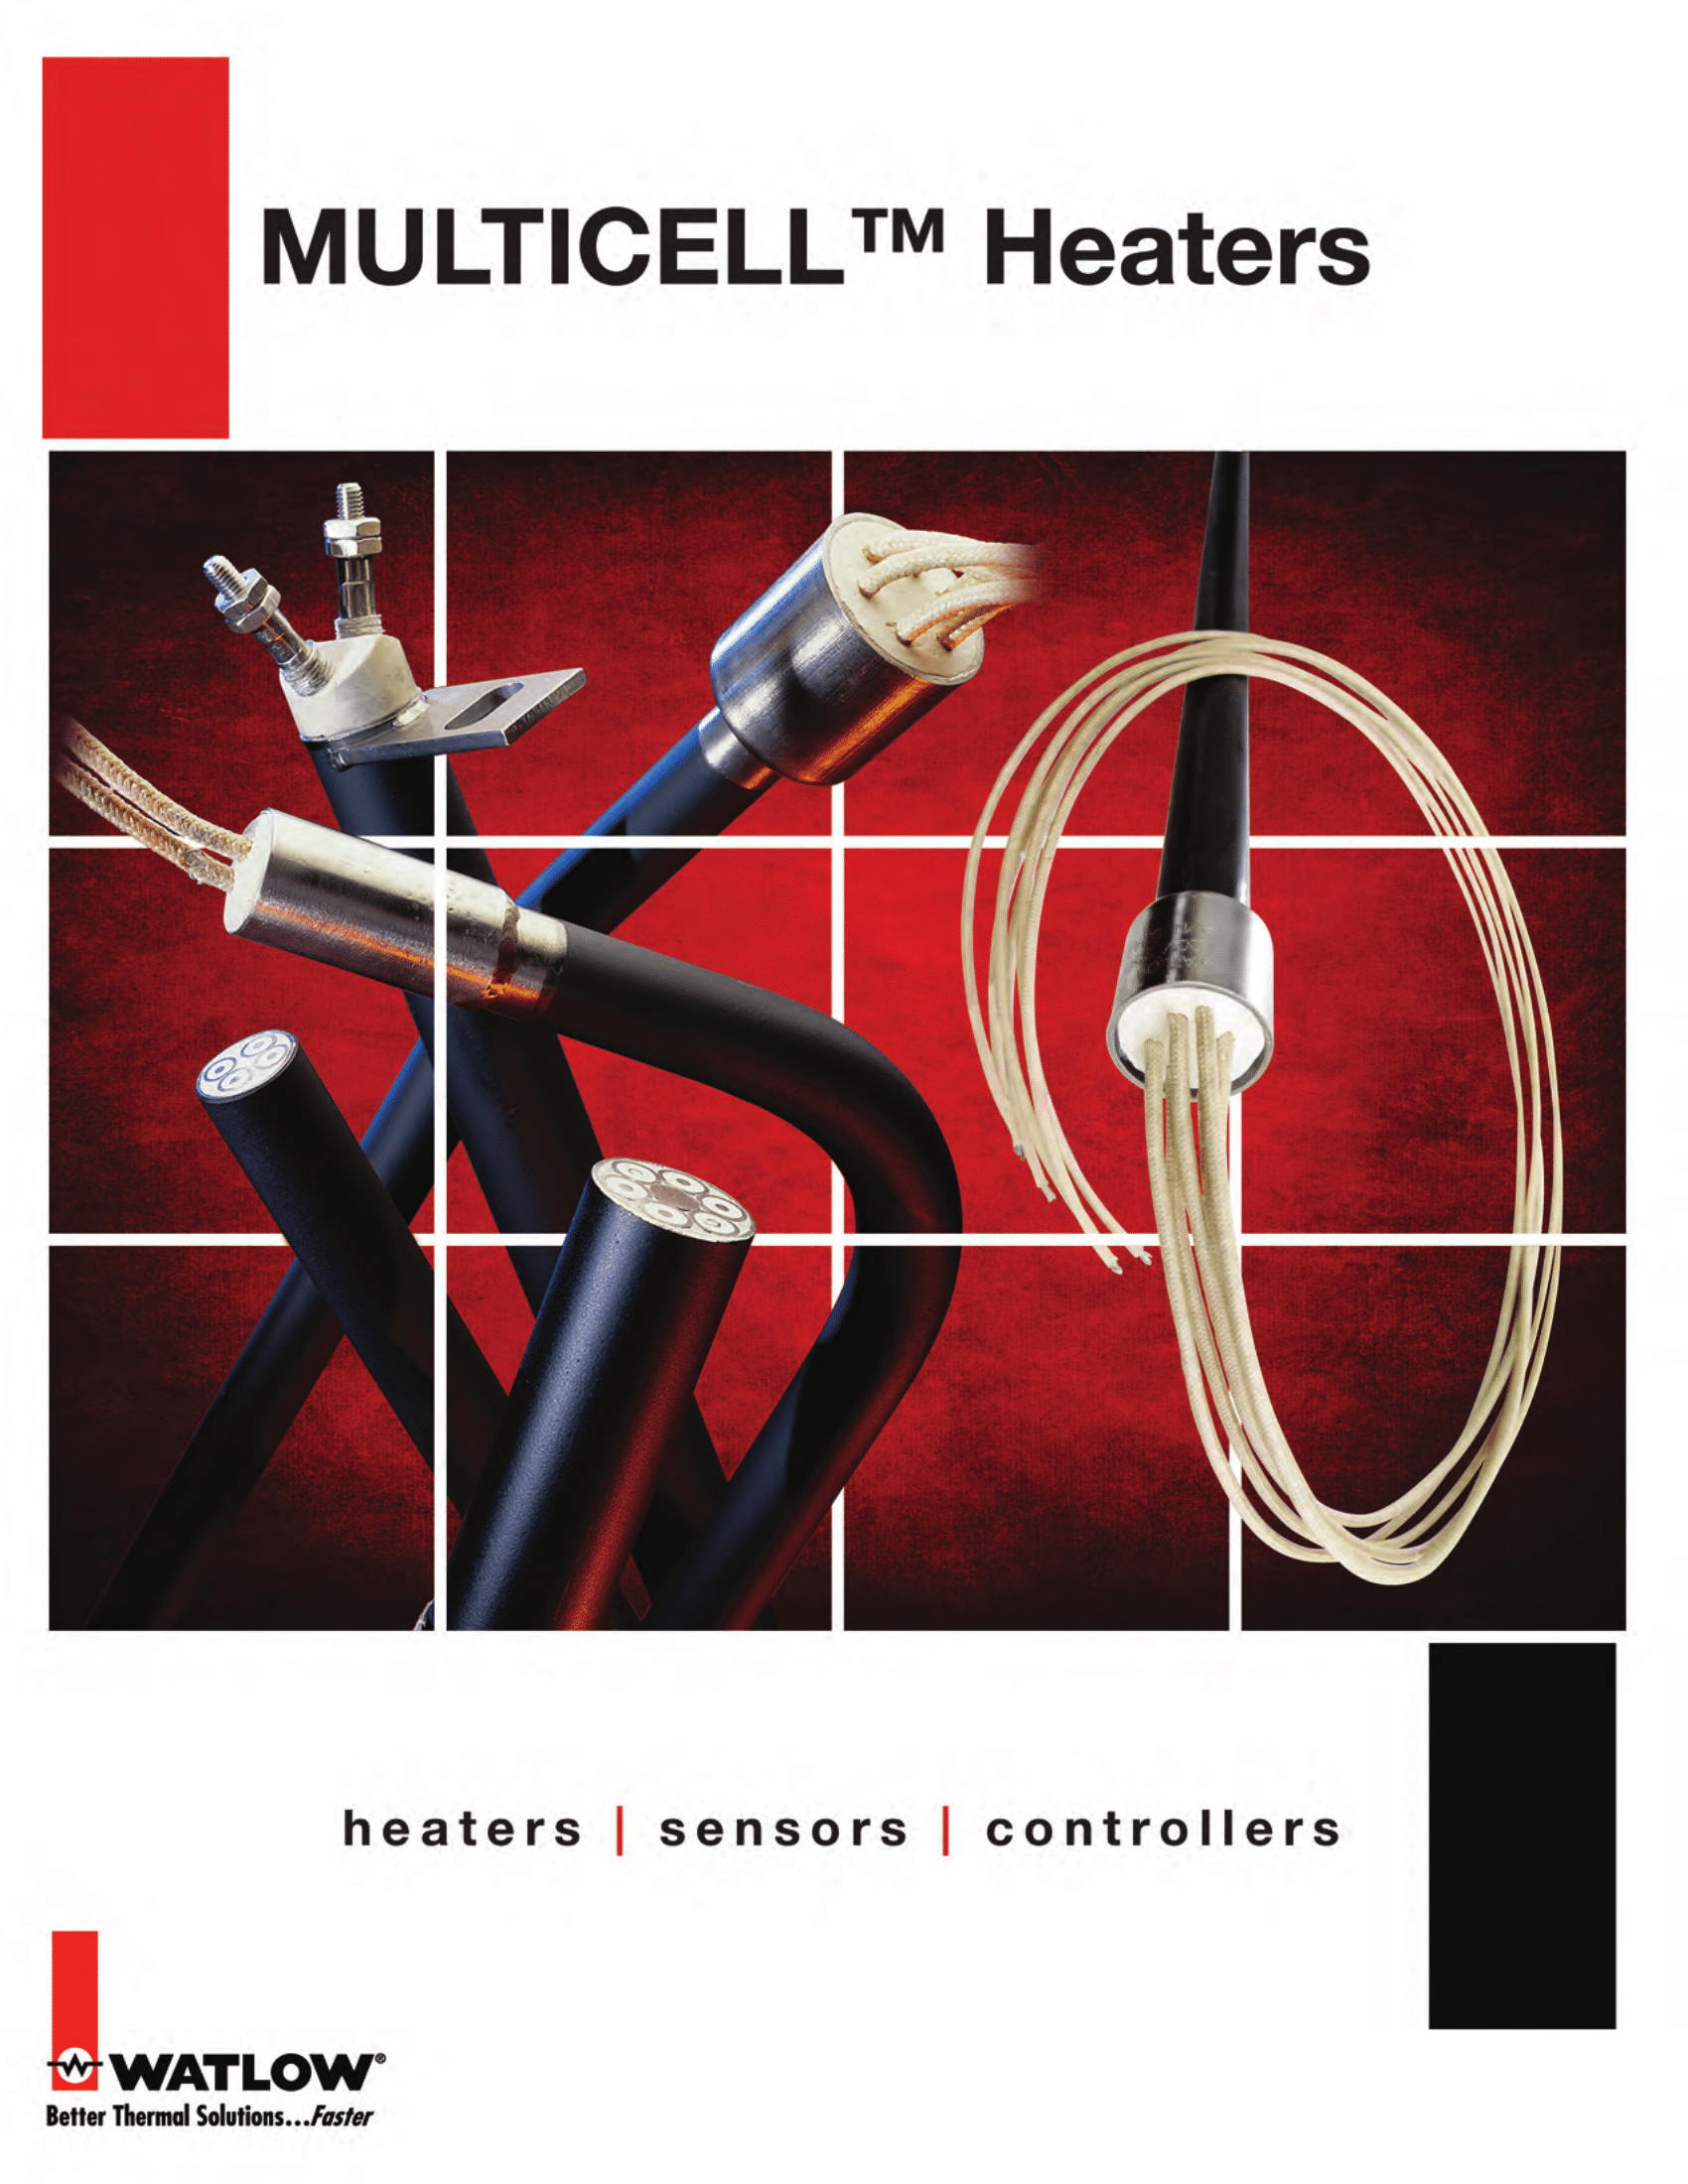 Multicell-Heaters-hanmc0812-1